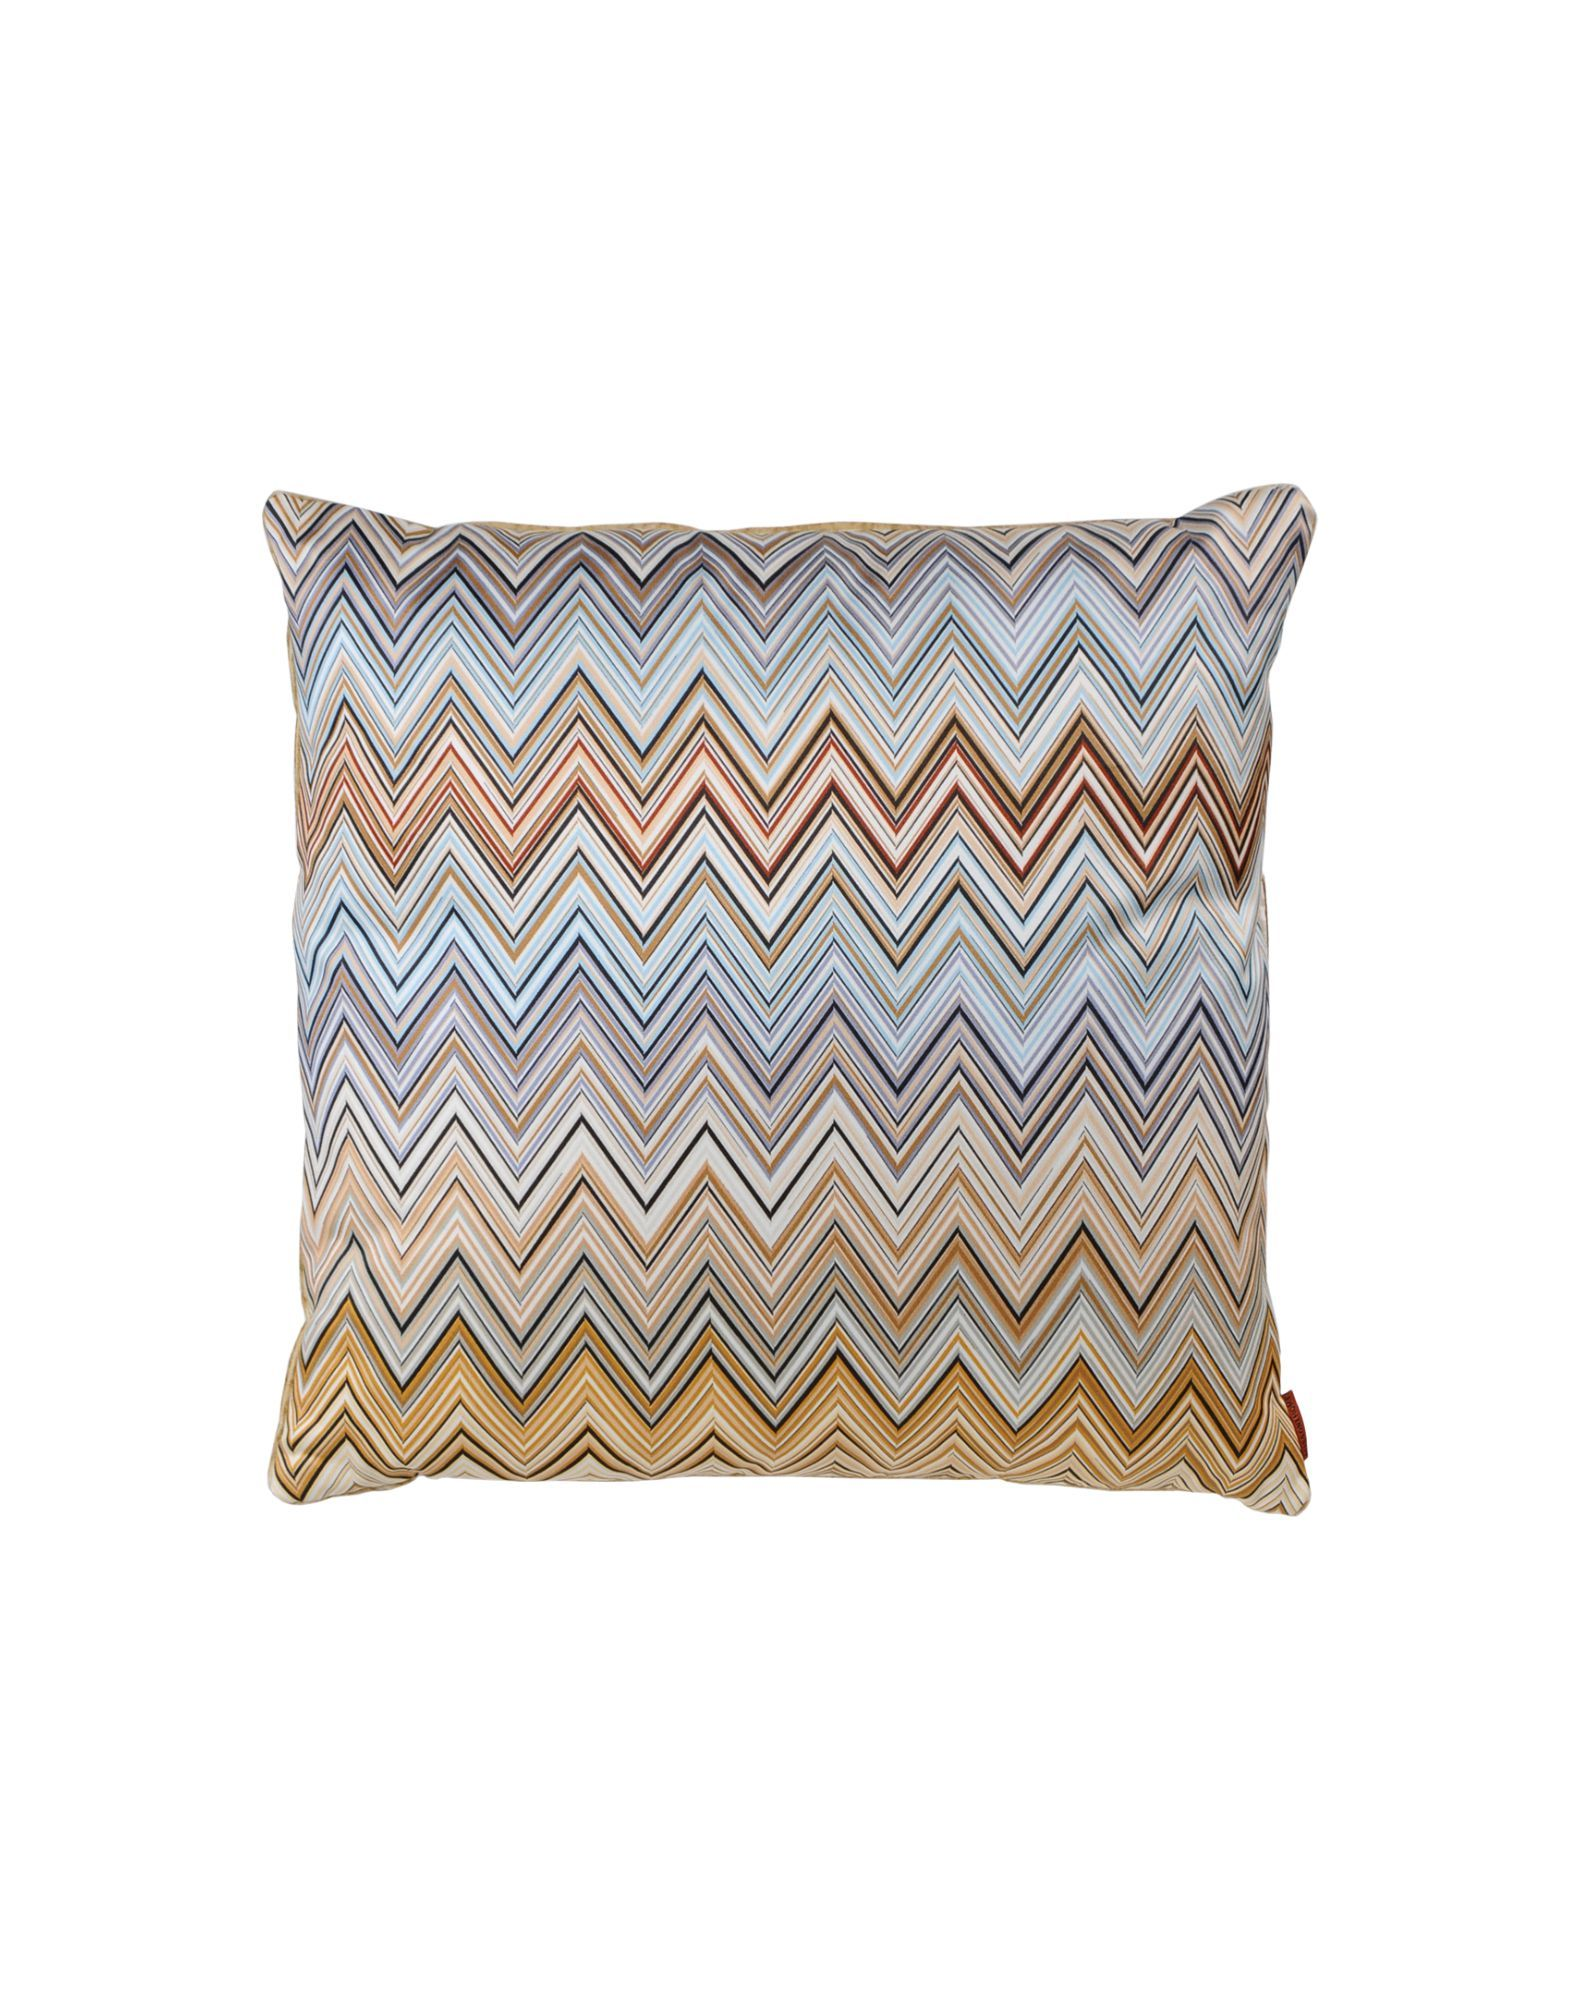 16x16 In Pillow Missoni Home 16x16 In Pillows Missoni Home On